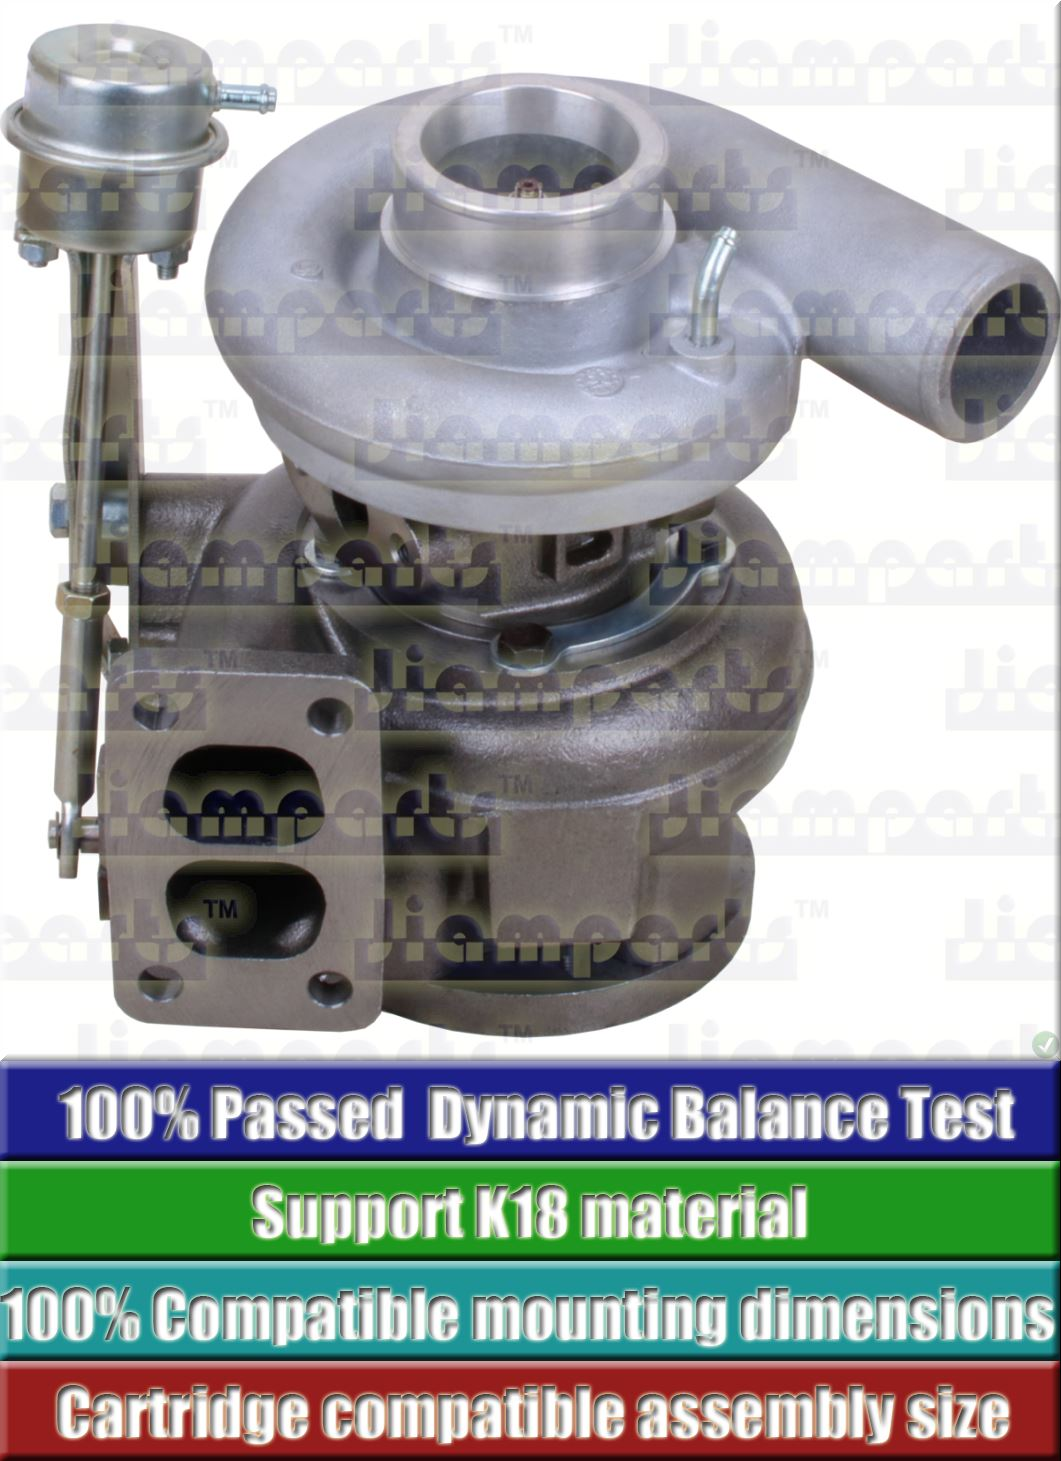 Description image:Turbocharger S2BG 315644